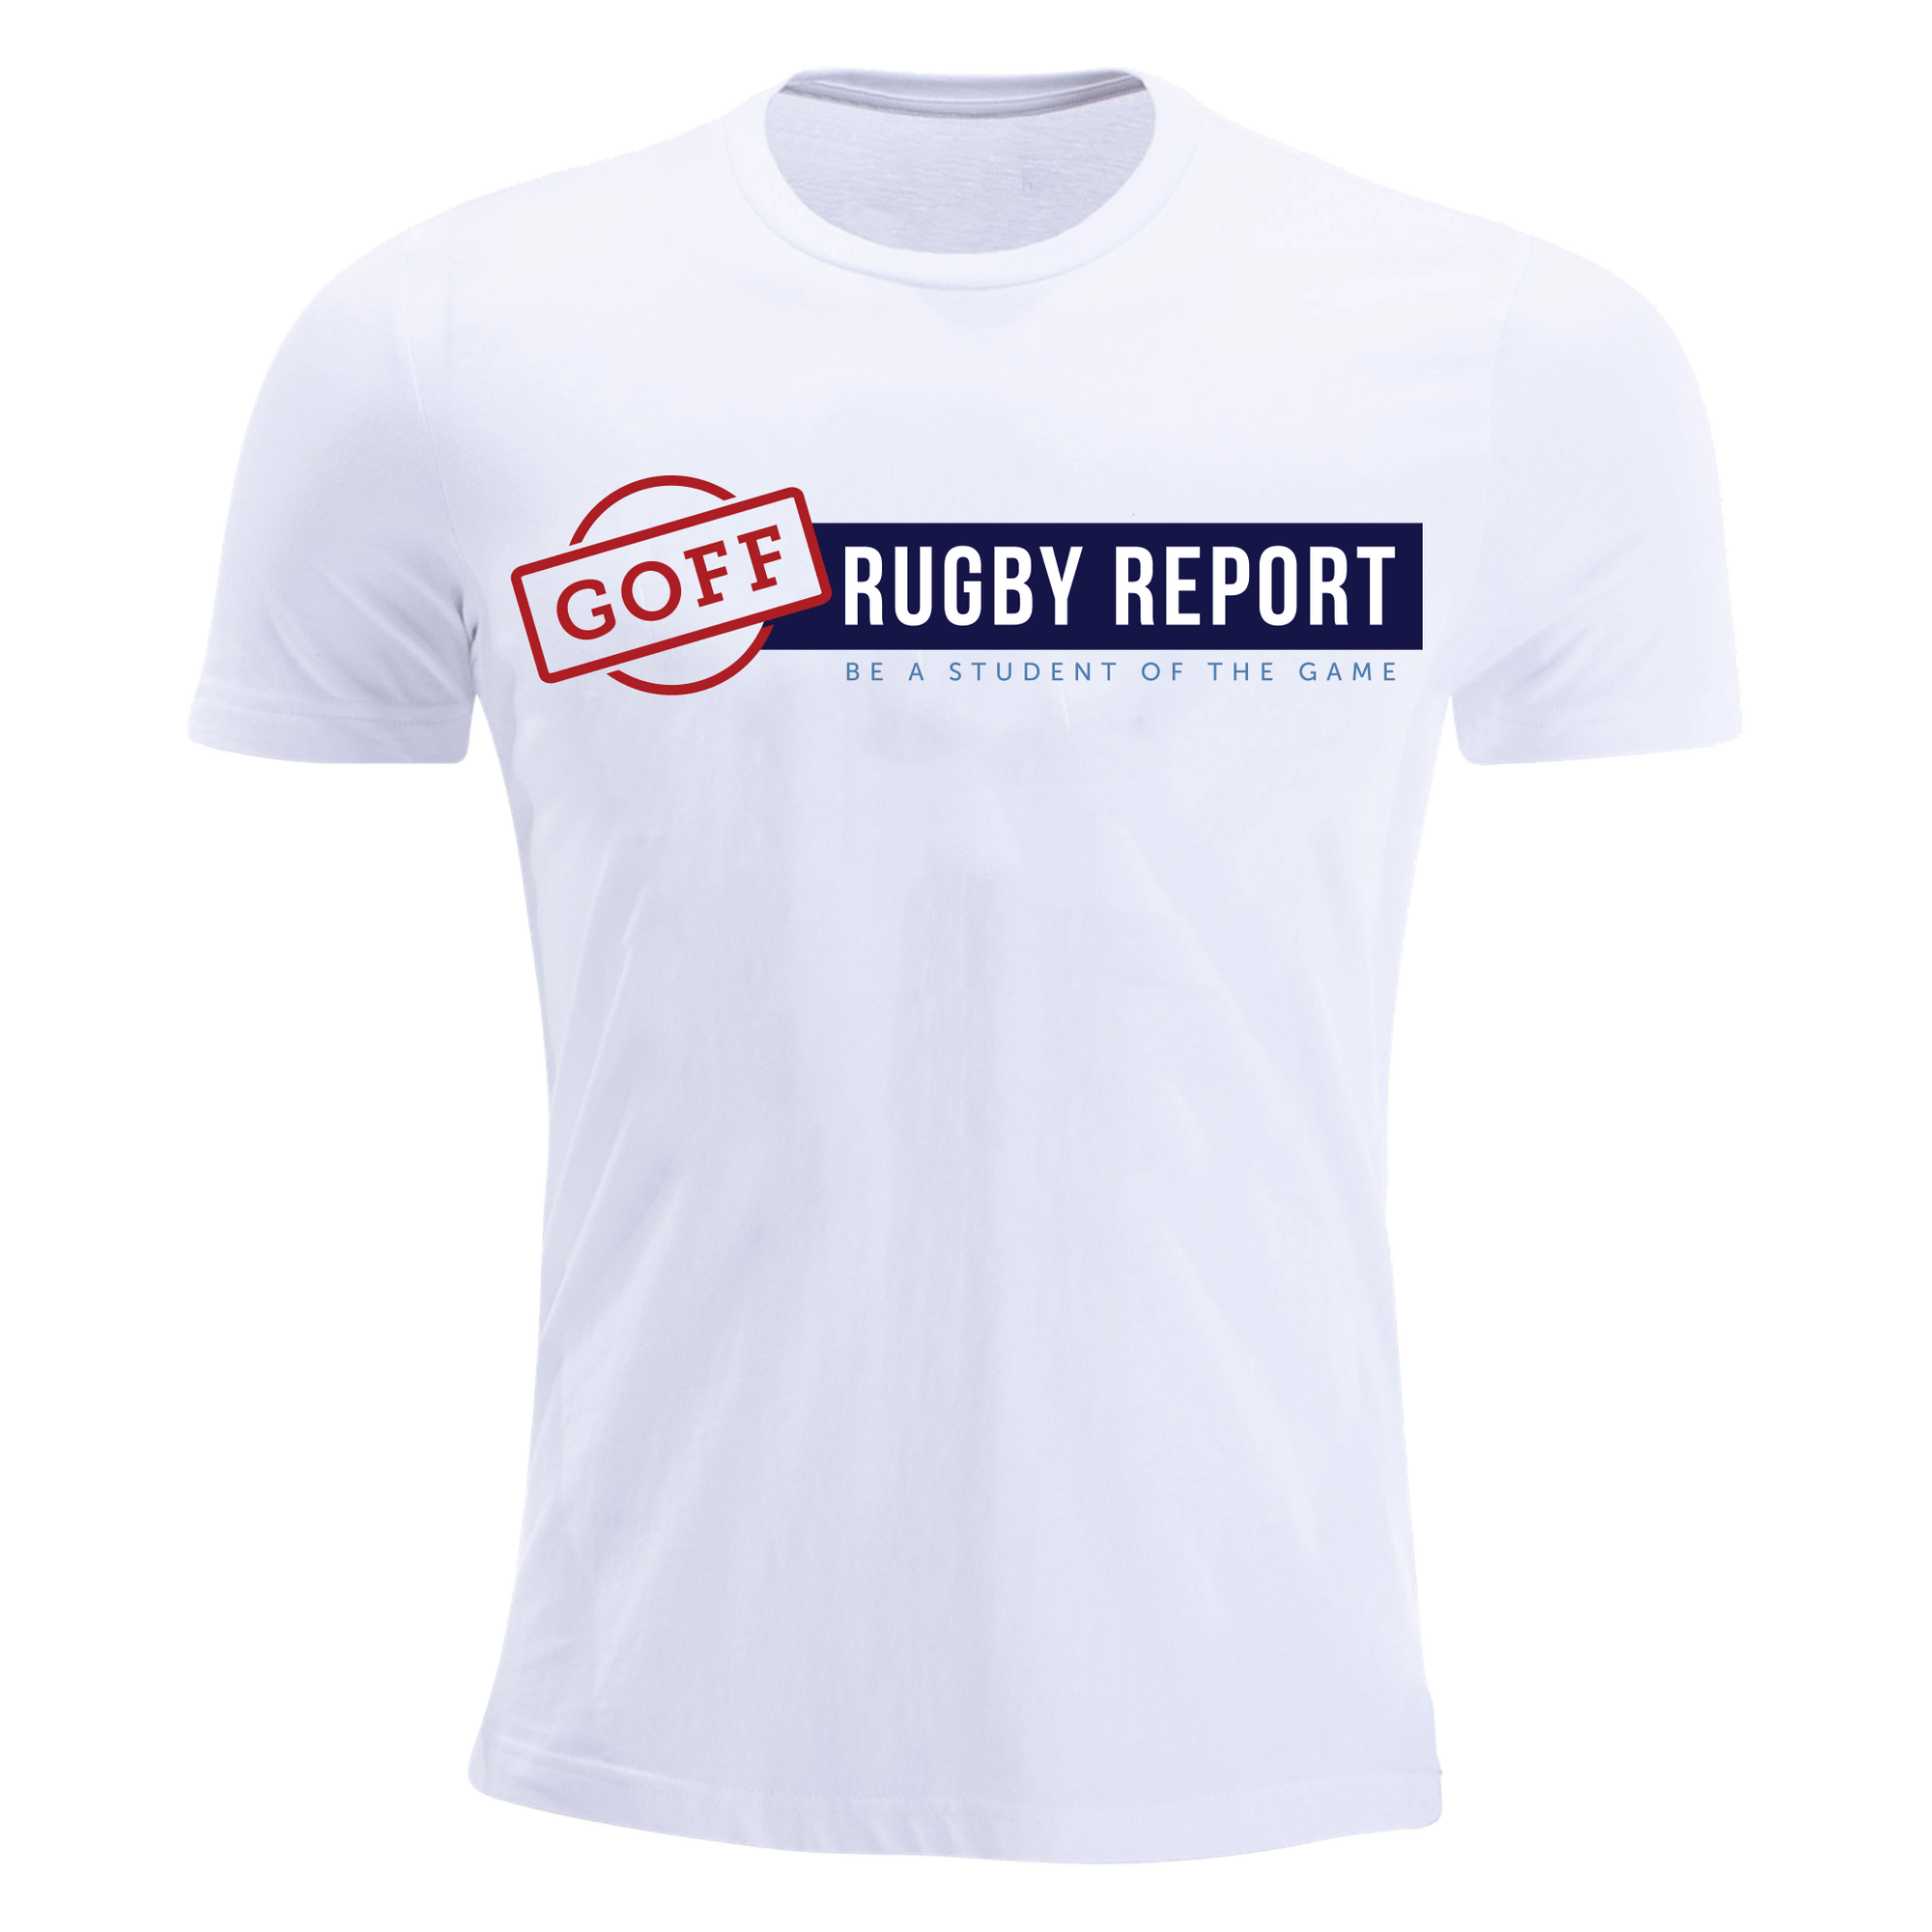 Goff Rugby Report White Premiership T-Shirt